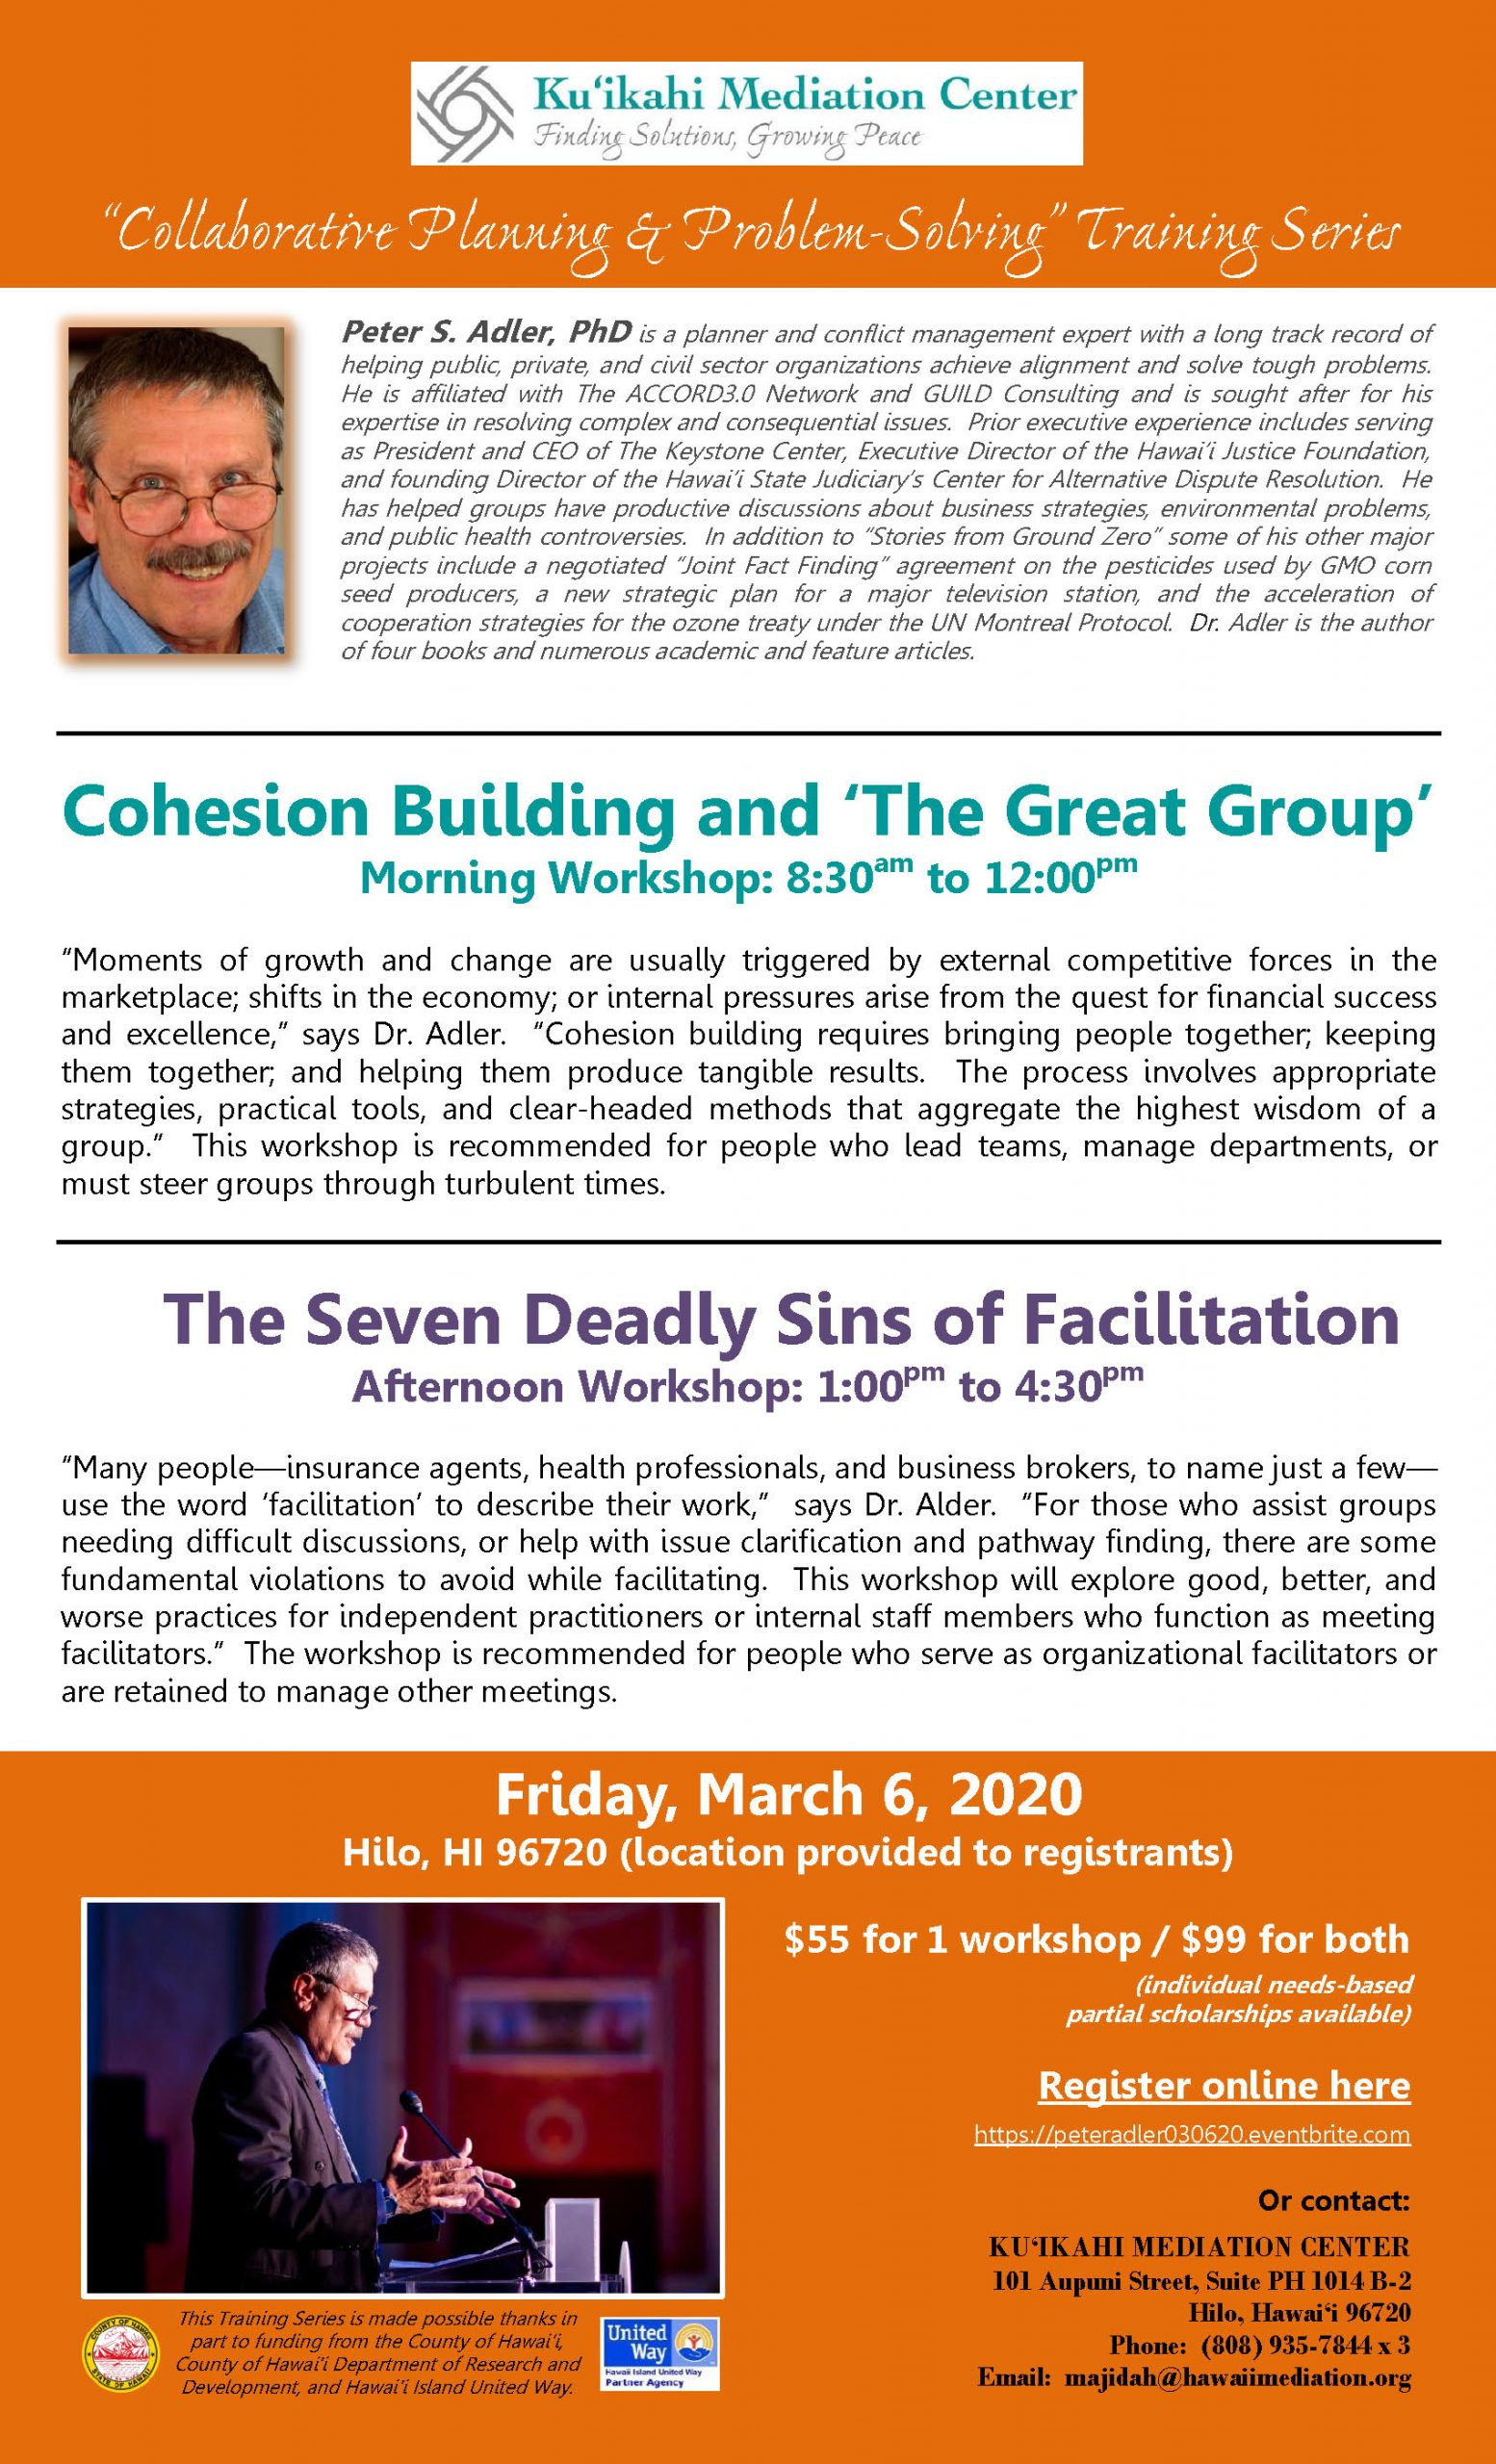 Flyer - Peter Adler Workshops 3-6-20